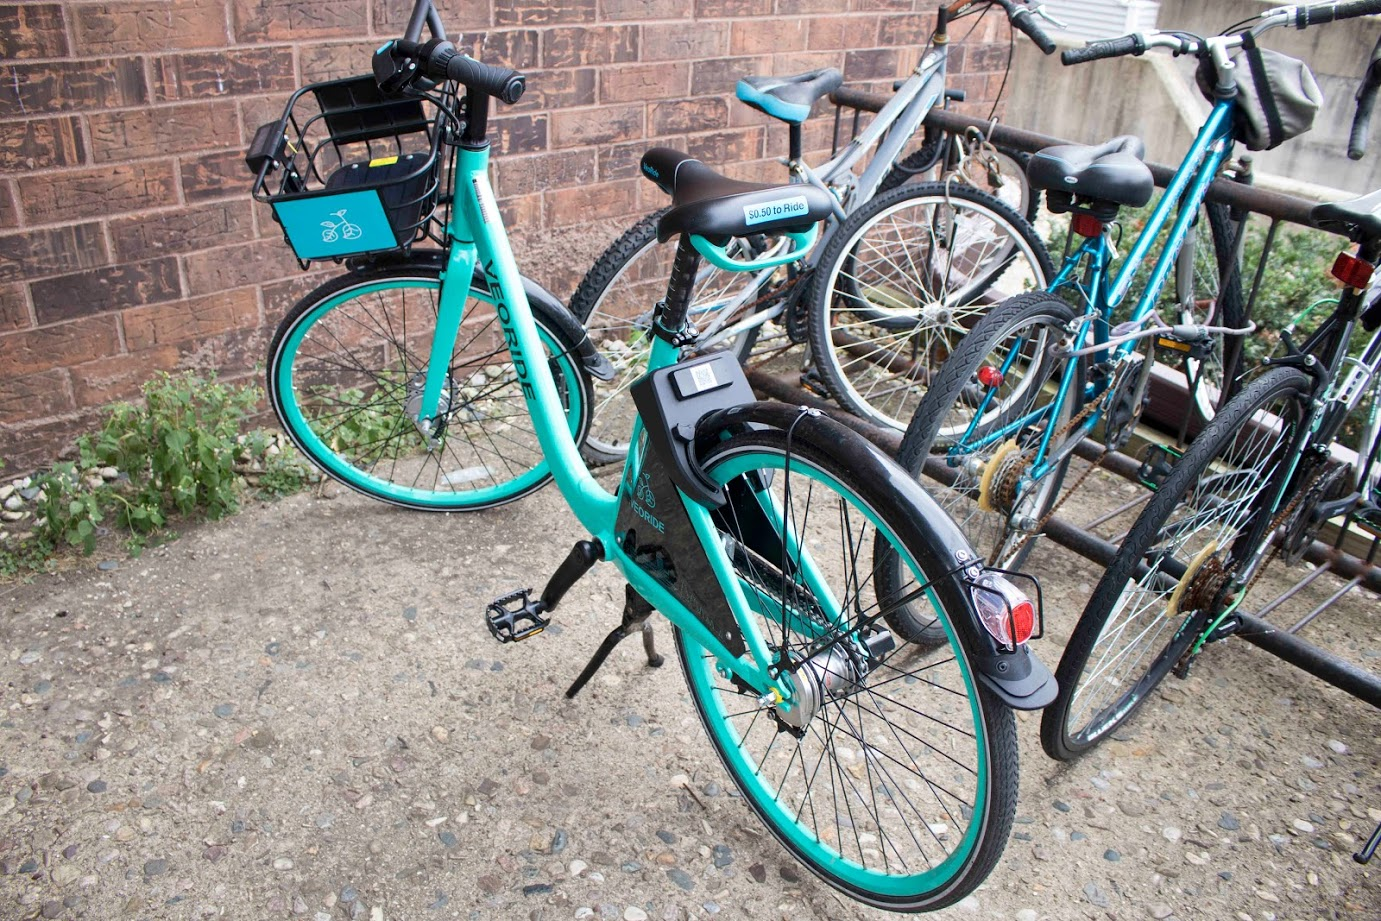 VeoRides are bikes open to the public for use through their app. The bikes are currently found laying around all over campus.